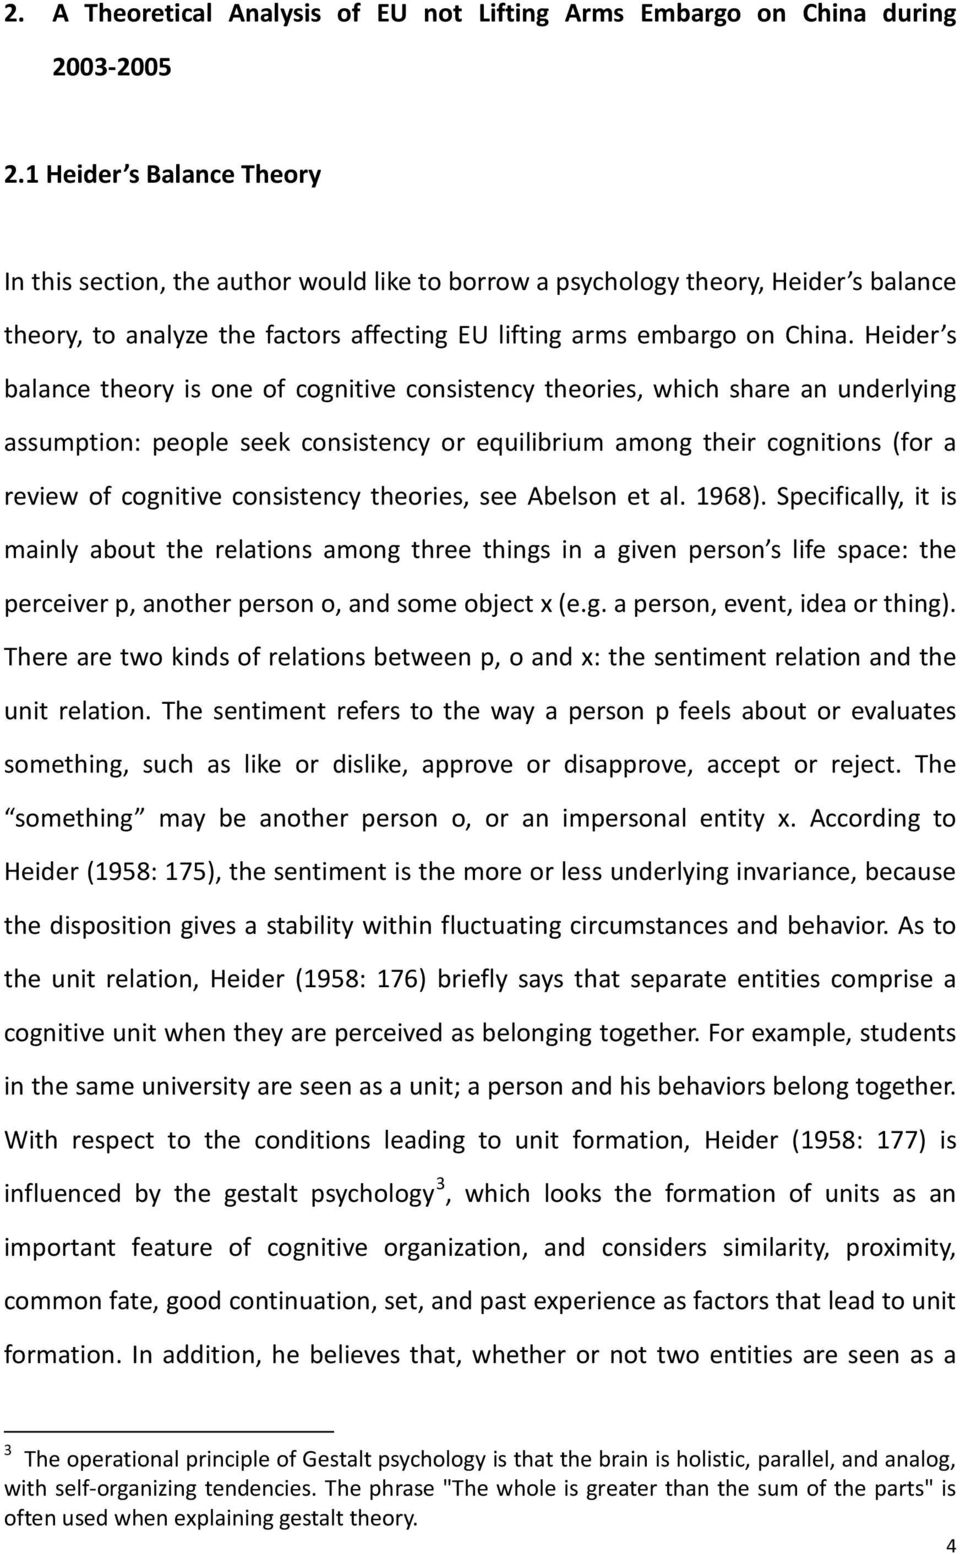 Heider s balance theory is one of cognitive consistency theories, which share an underlying assumtion: eole seek consistency or equilibrium among their cognitions (for a review of cognitive